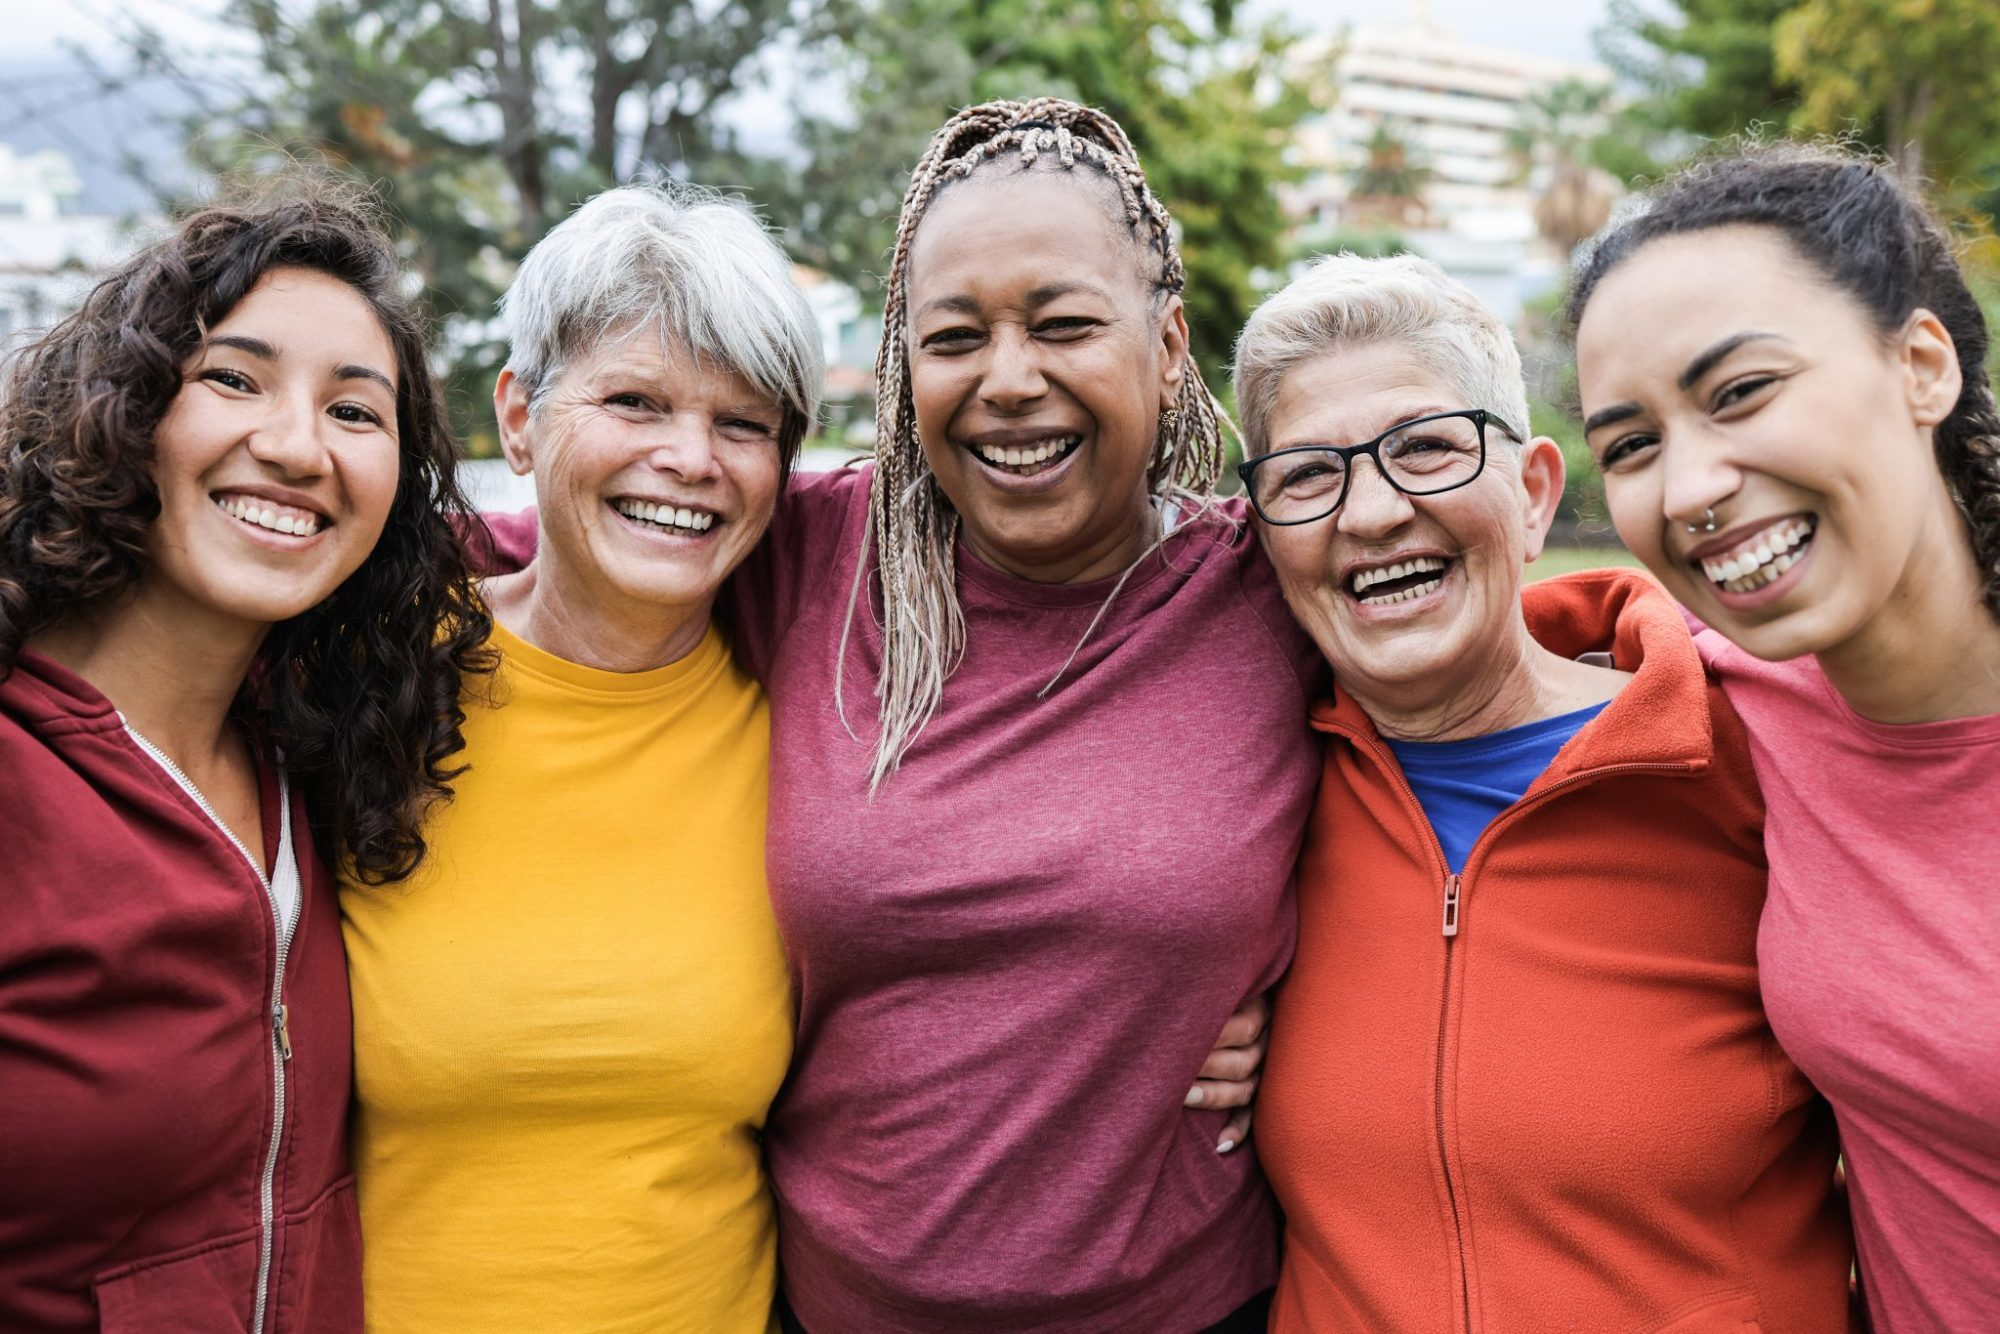 a multi-generational group of happy, smiling women